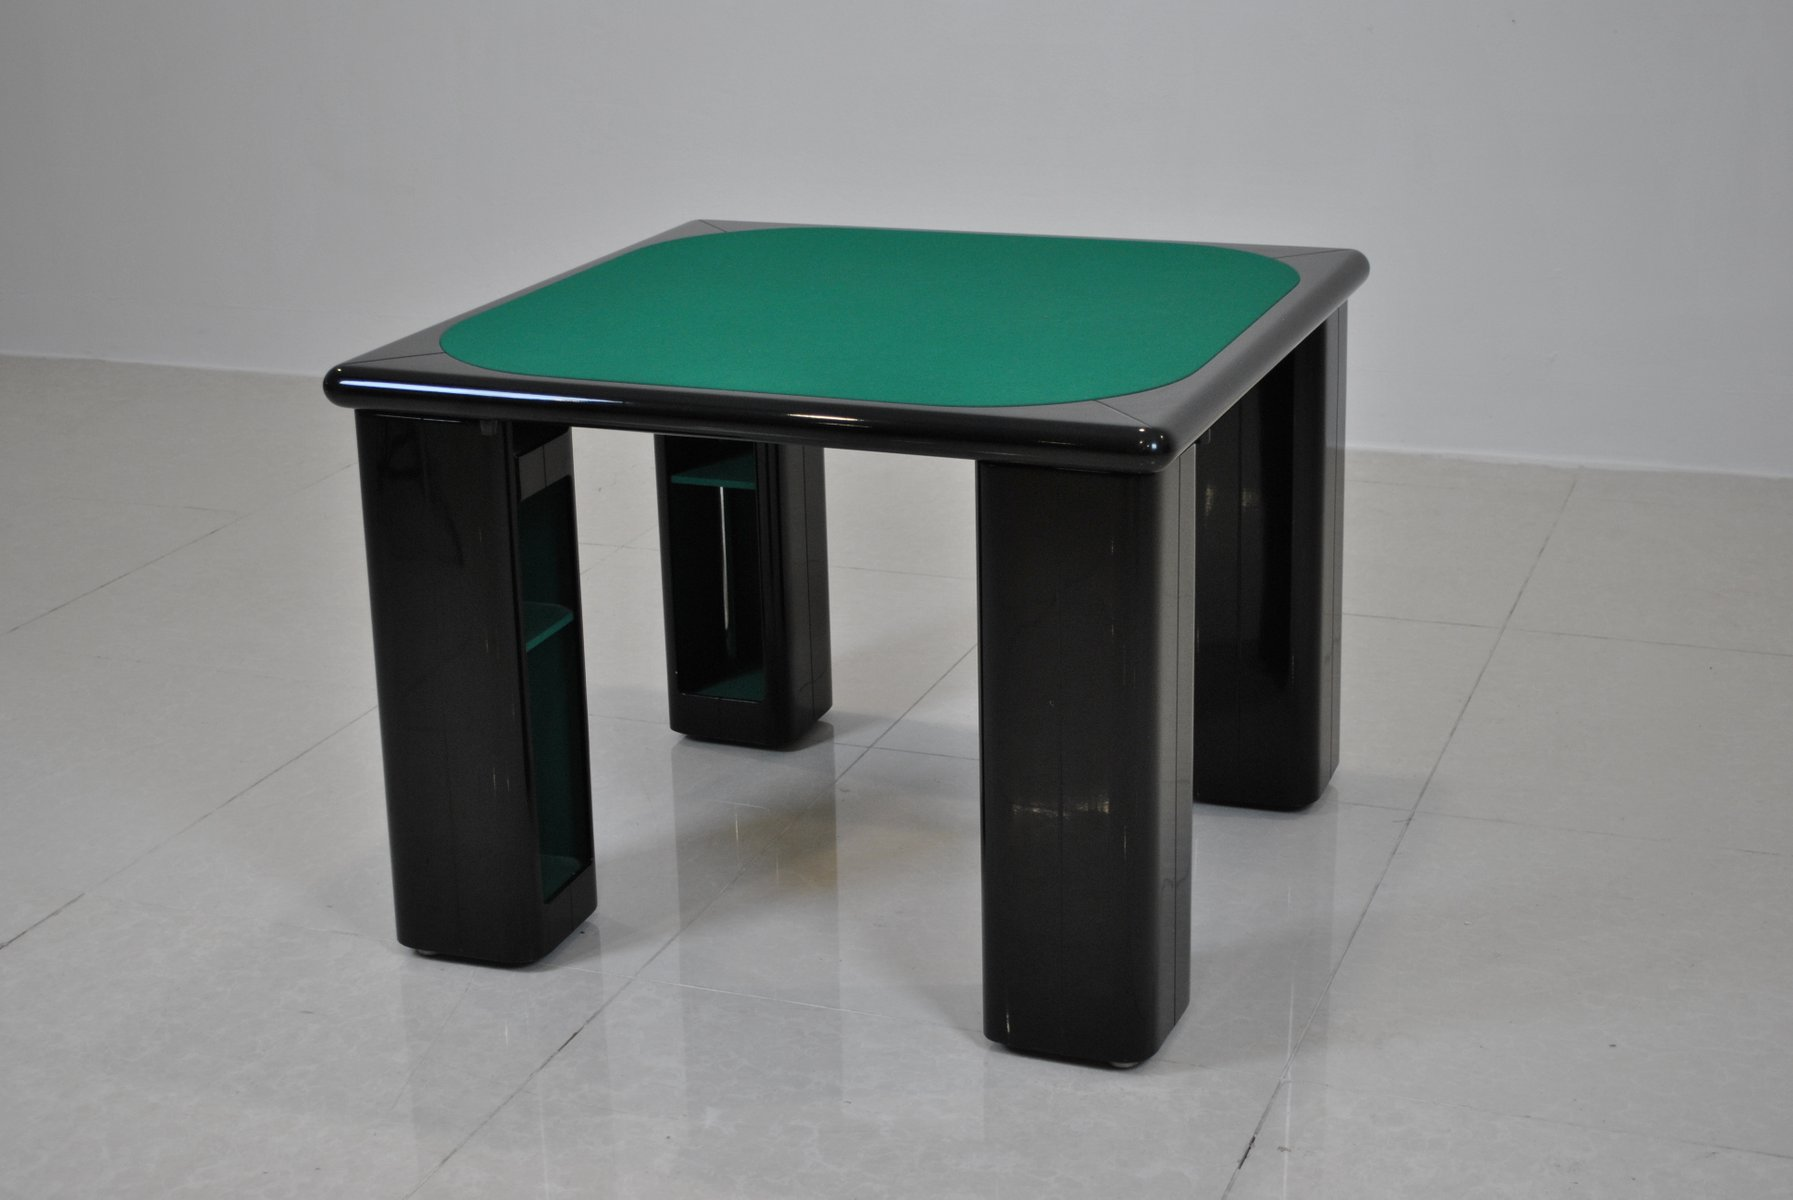 Lacquered Games Table By Pierluigi Molinari For Pozzi Milano, 1970s